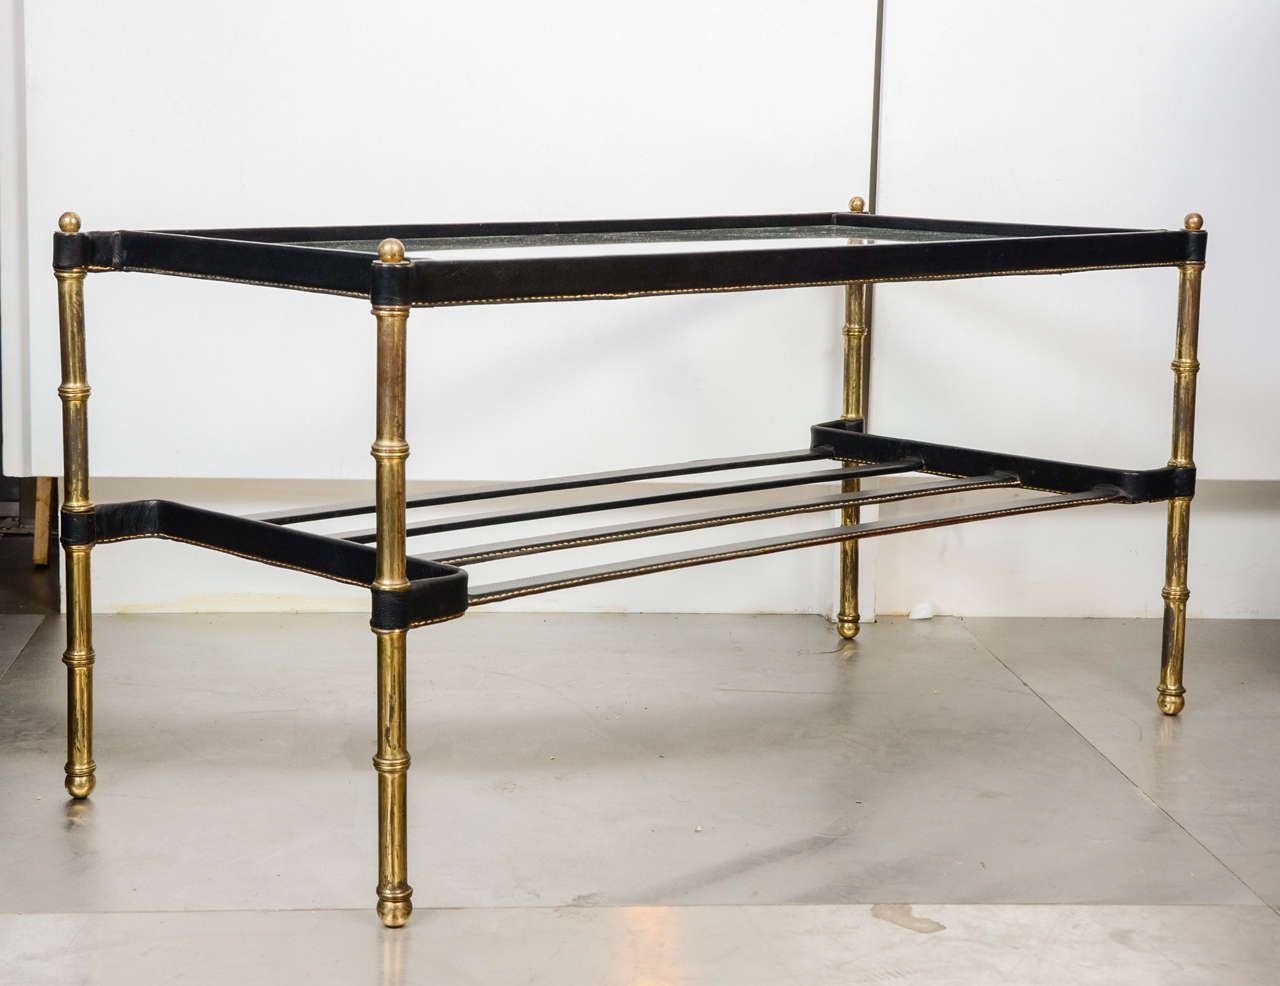 1950s Cocktail Table by Jaques Adnet | From a unique collection of antique and modern coffee and cocktail tables at https://www.1stdibs.com/furniture/tables/coffee-tables-cocktail-tables/